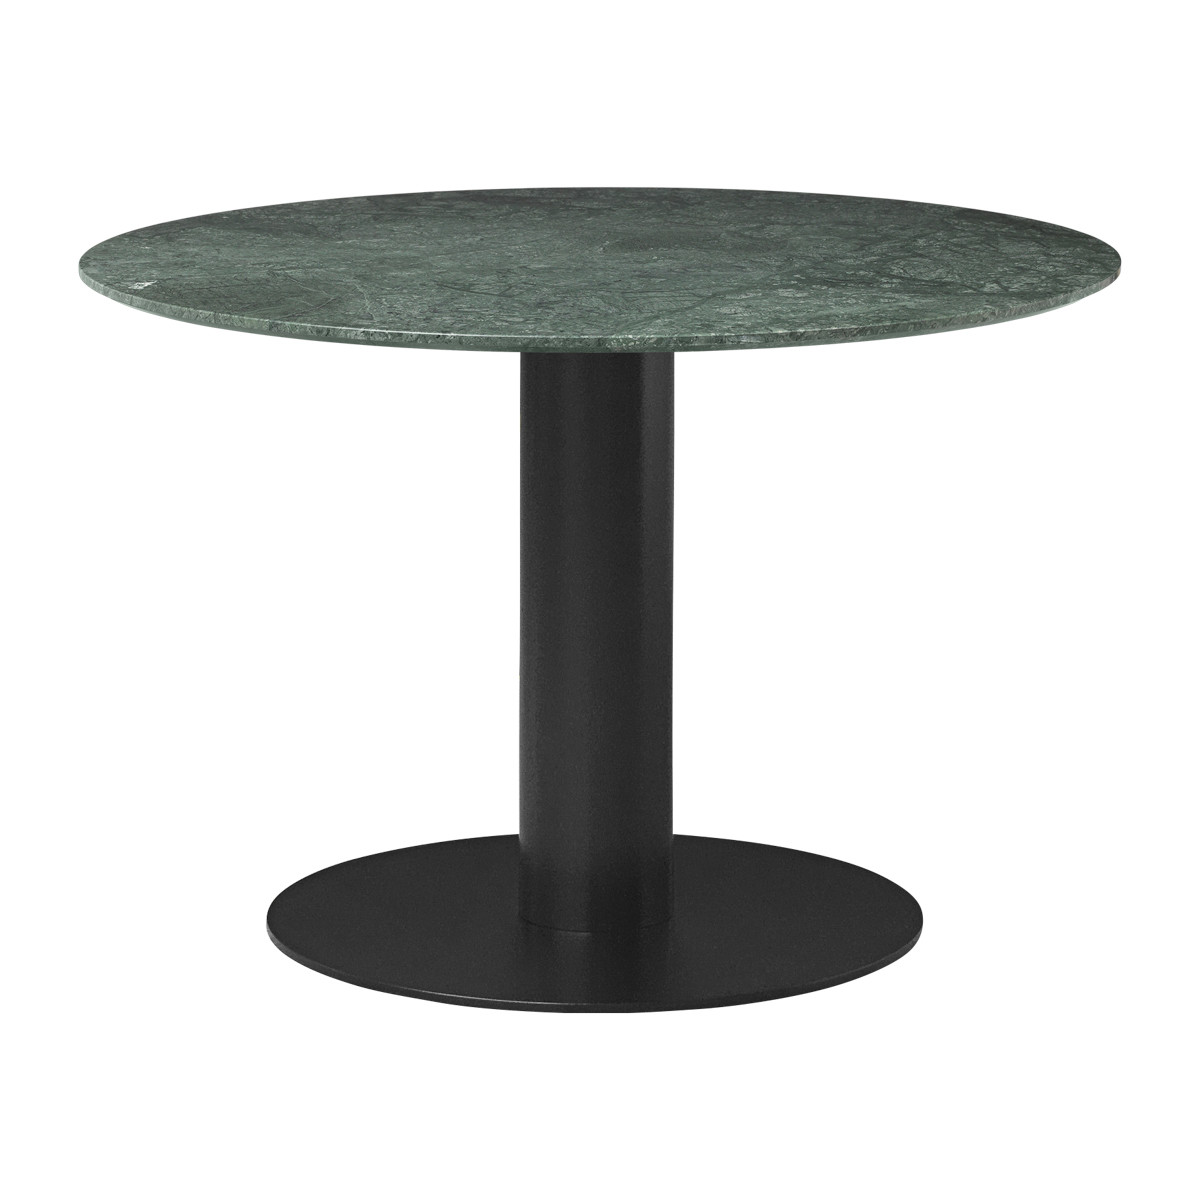 Gubi 2.0 Dining Table - Round, 110cm Diameter